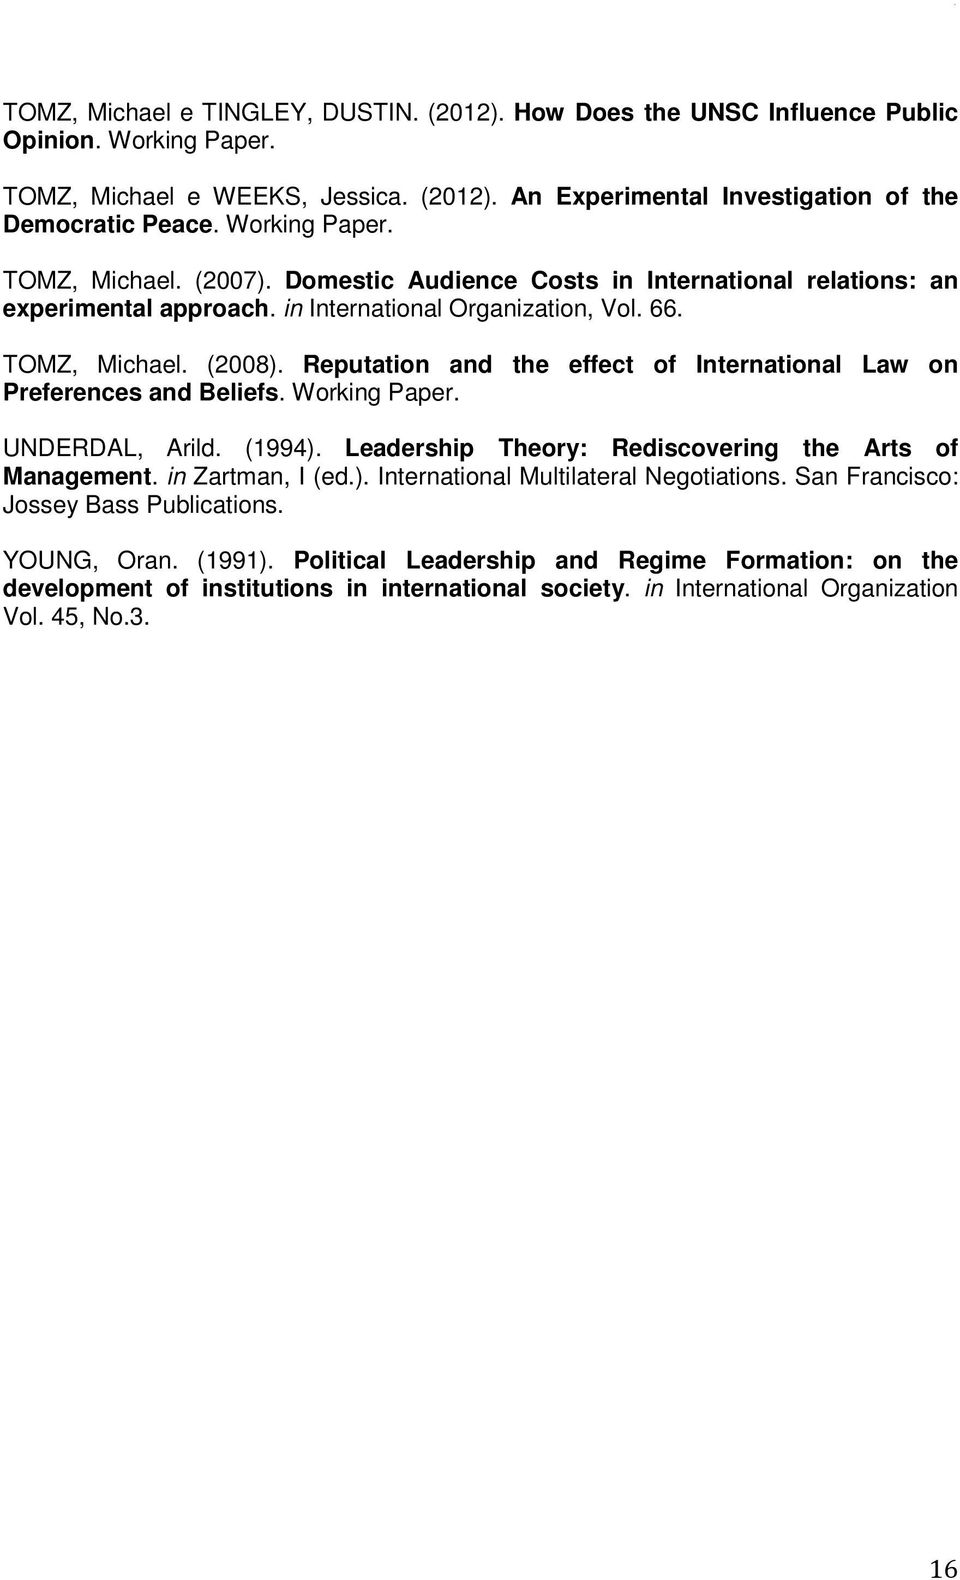 Reputation and the effect of International Law on Preferences and Beliefs. Working Paper. UNDERDAL, Arild. (1994). Leadership Theory: Rediscovering the Arts of Management. in Zartman, I (ed.). International Multilateral Negotiations.